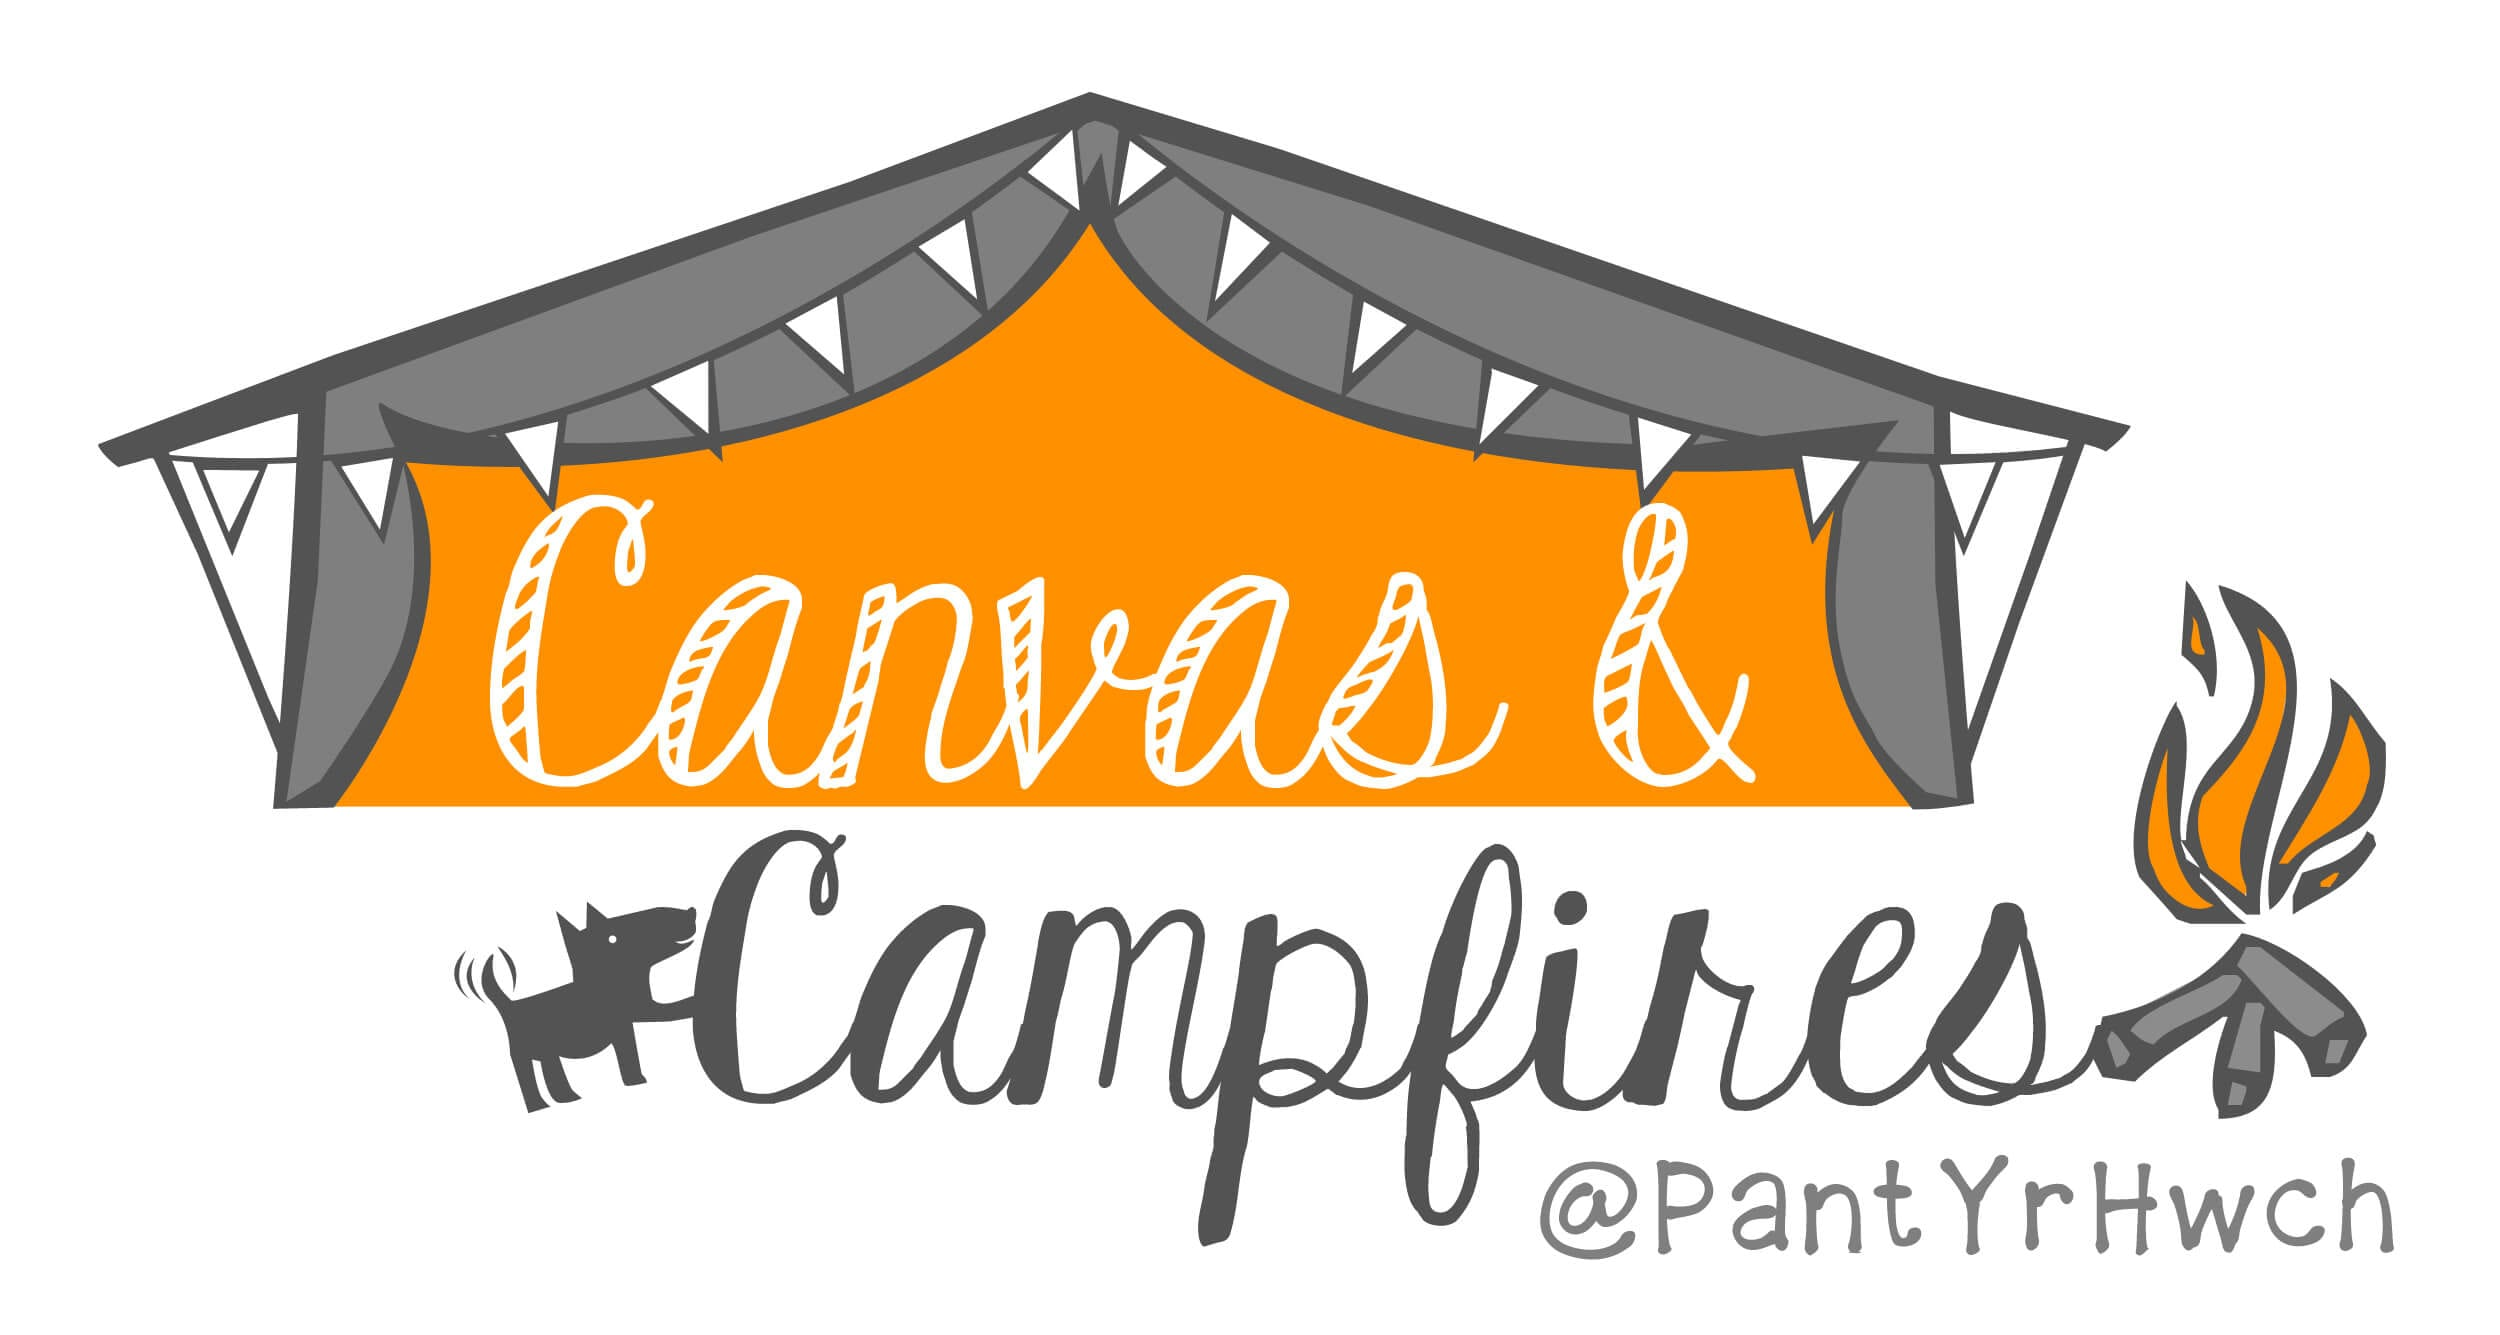 Canvas & Campfires